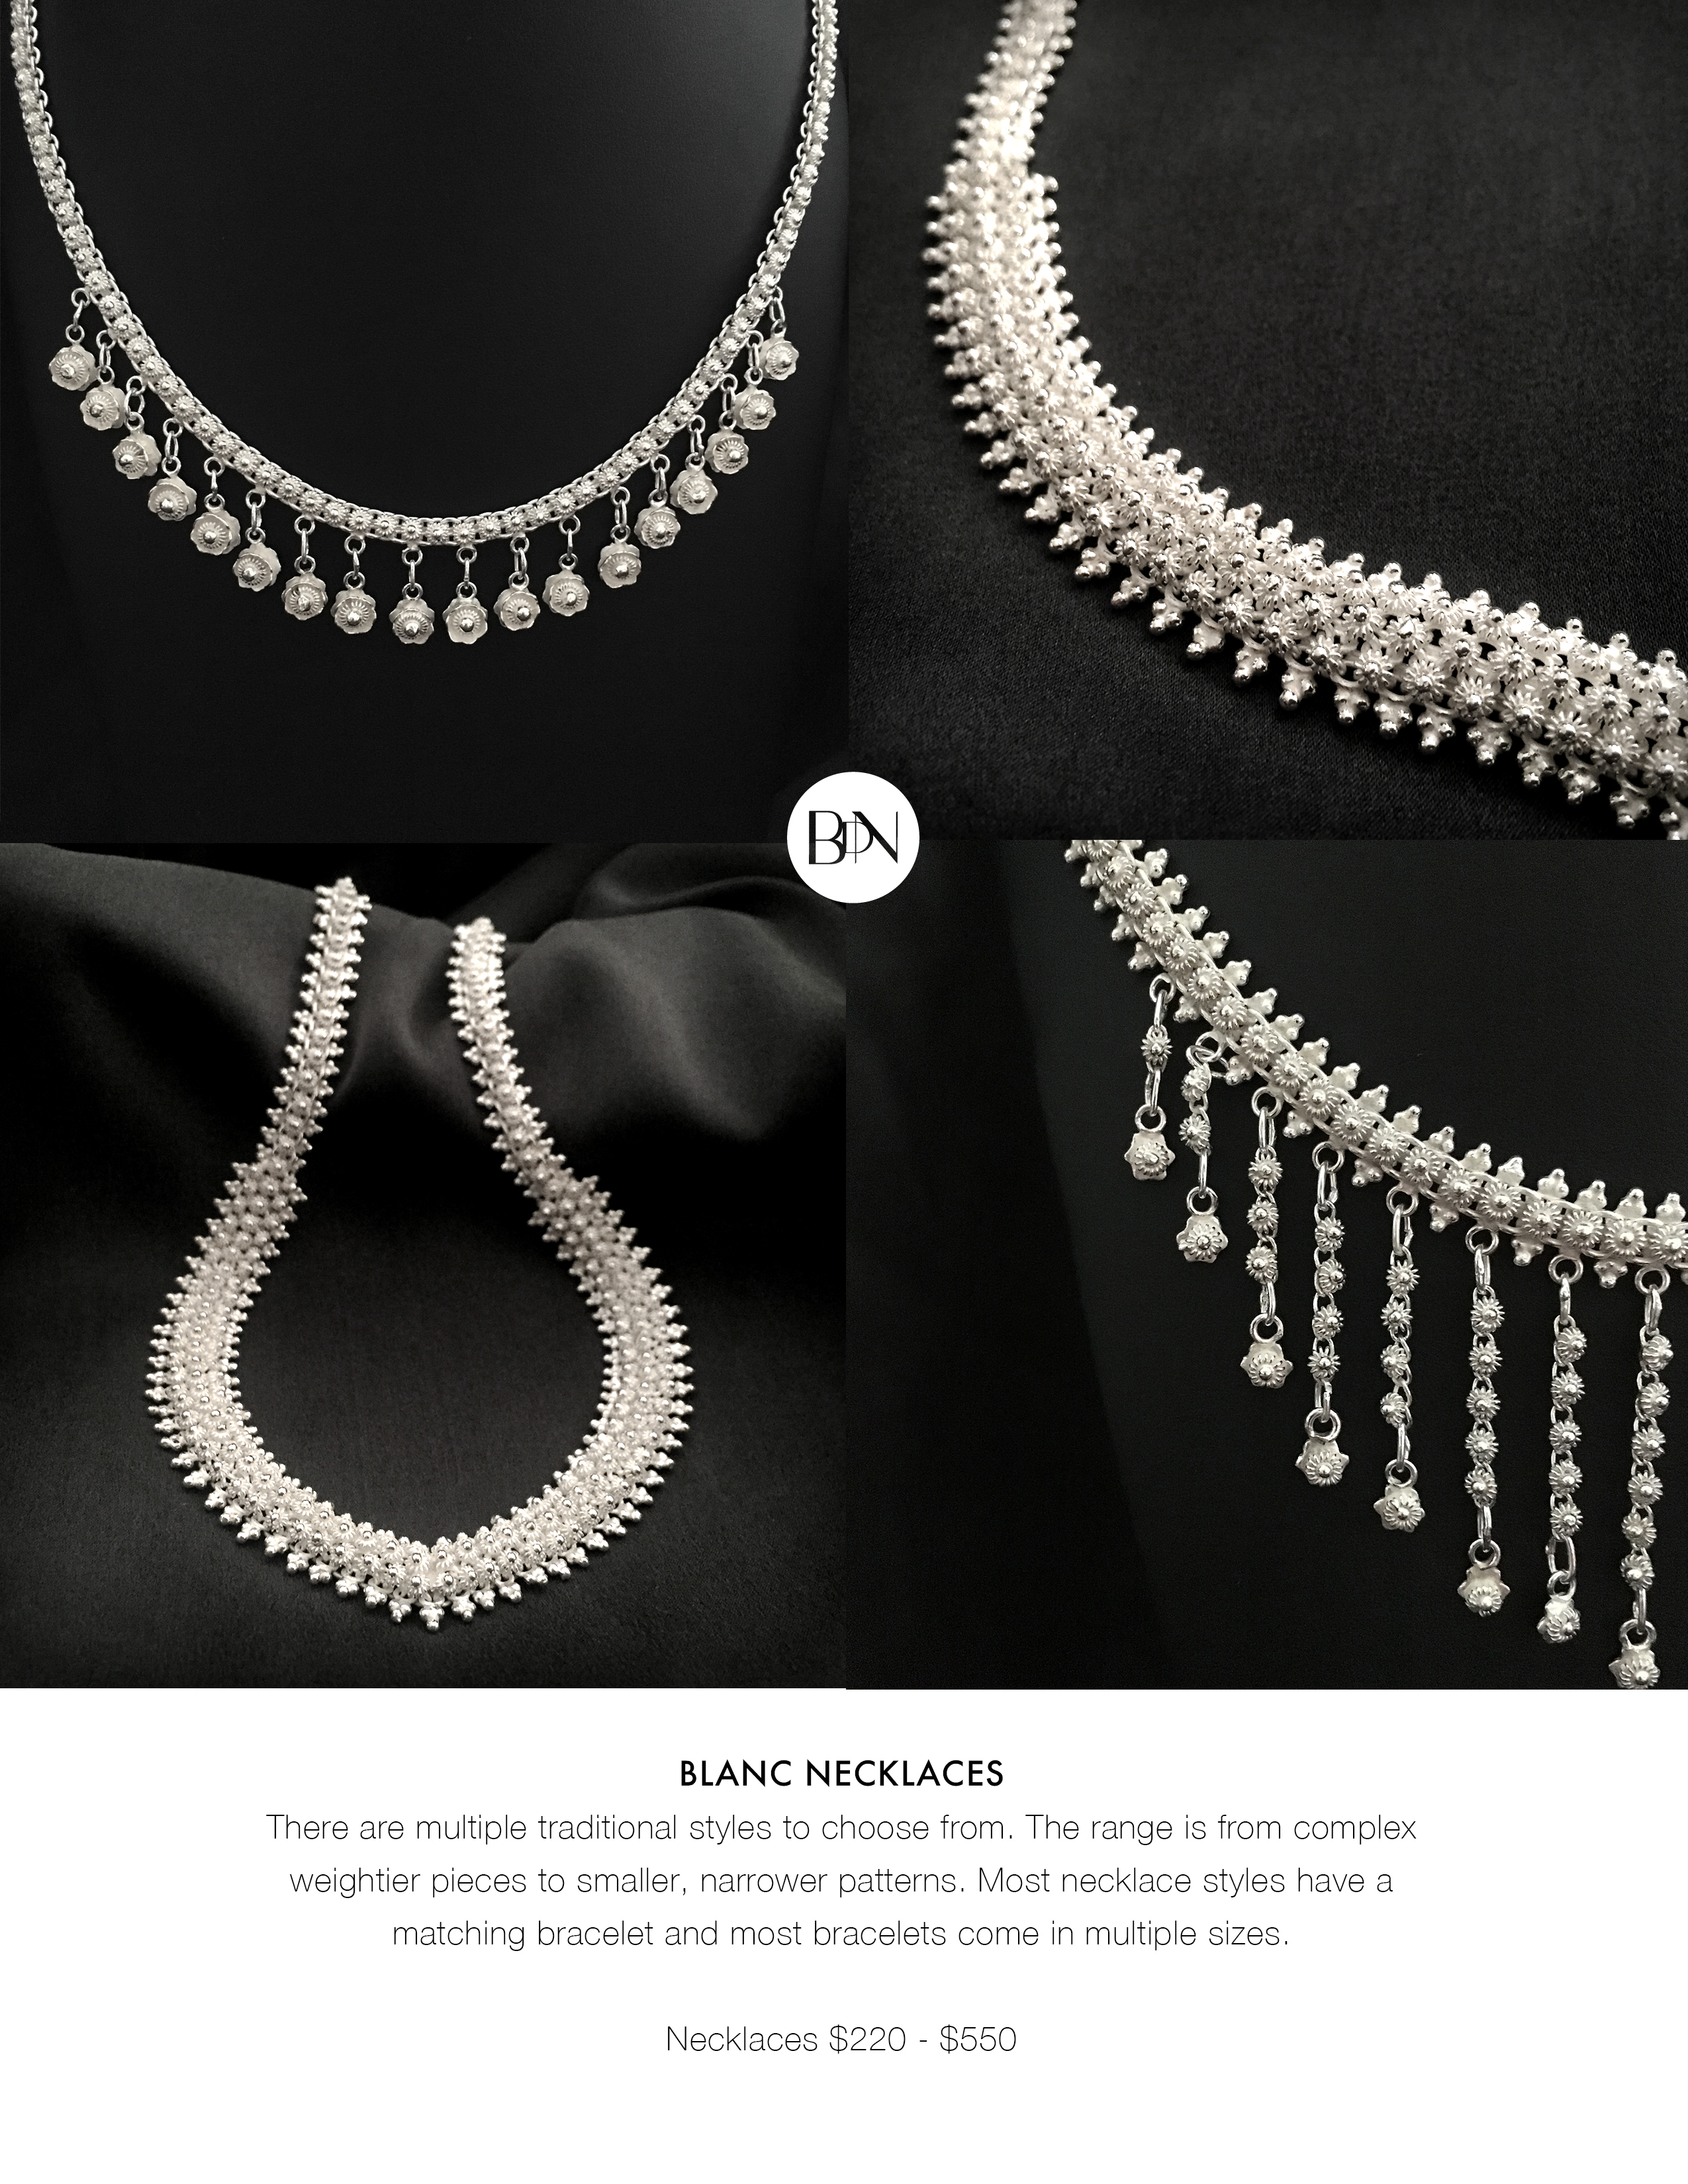 The Blanc Collection - Necklaces I